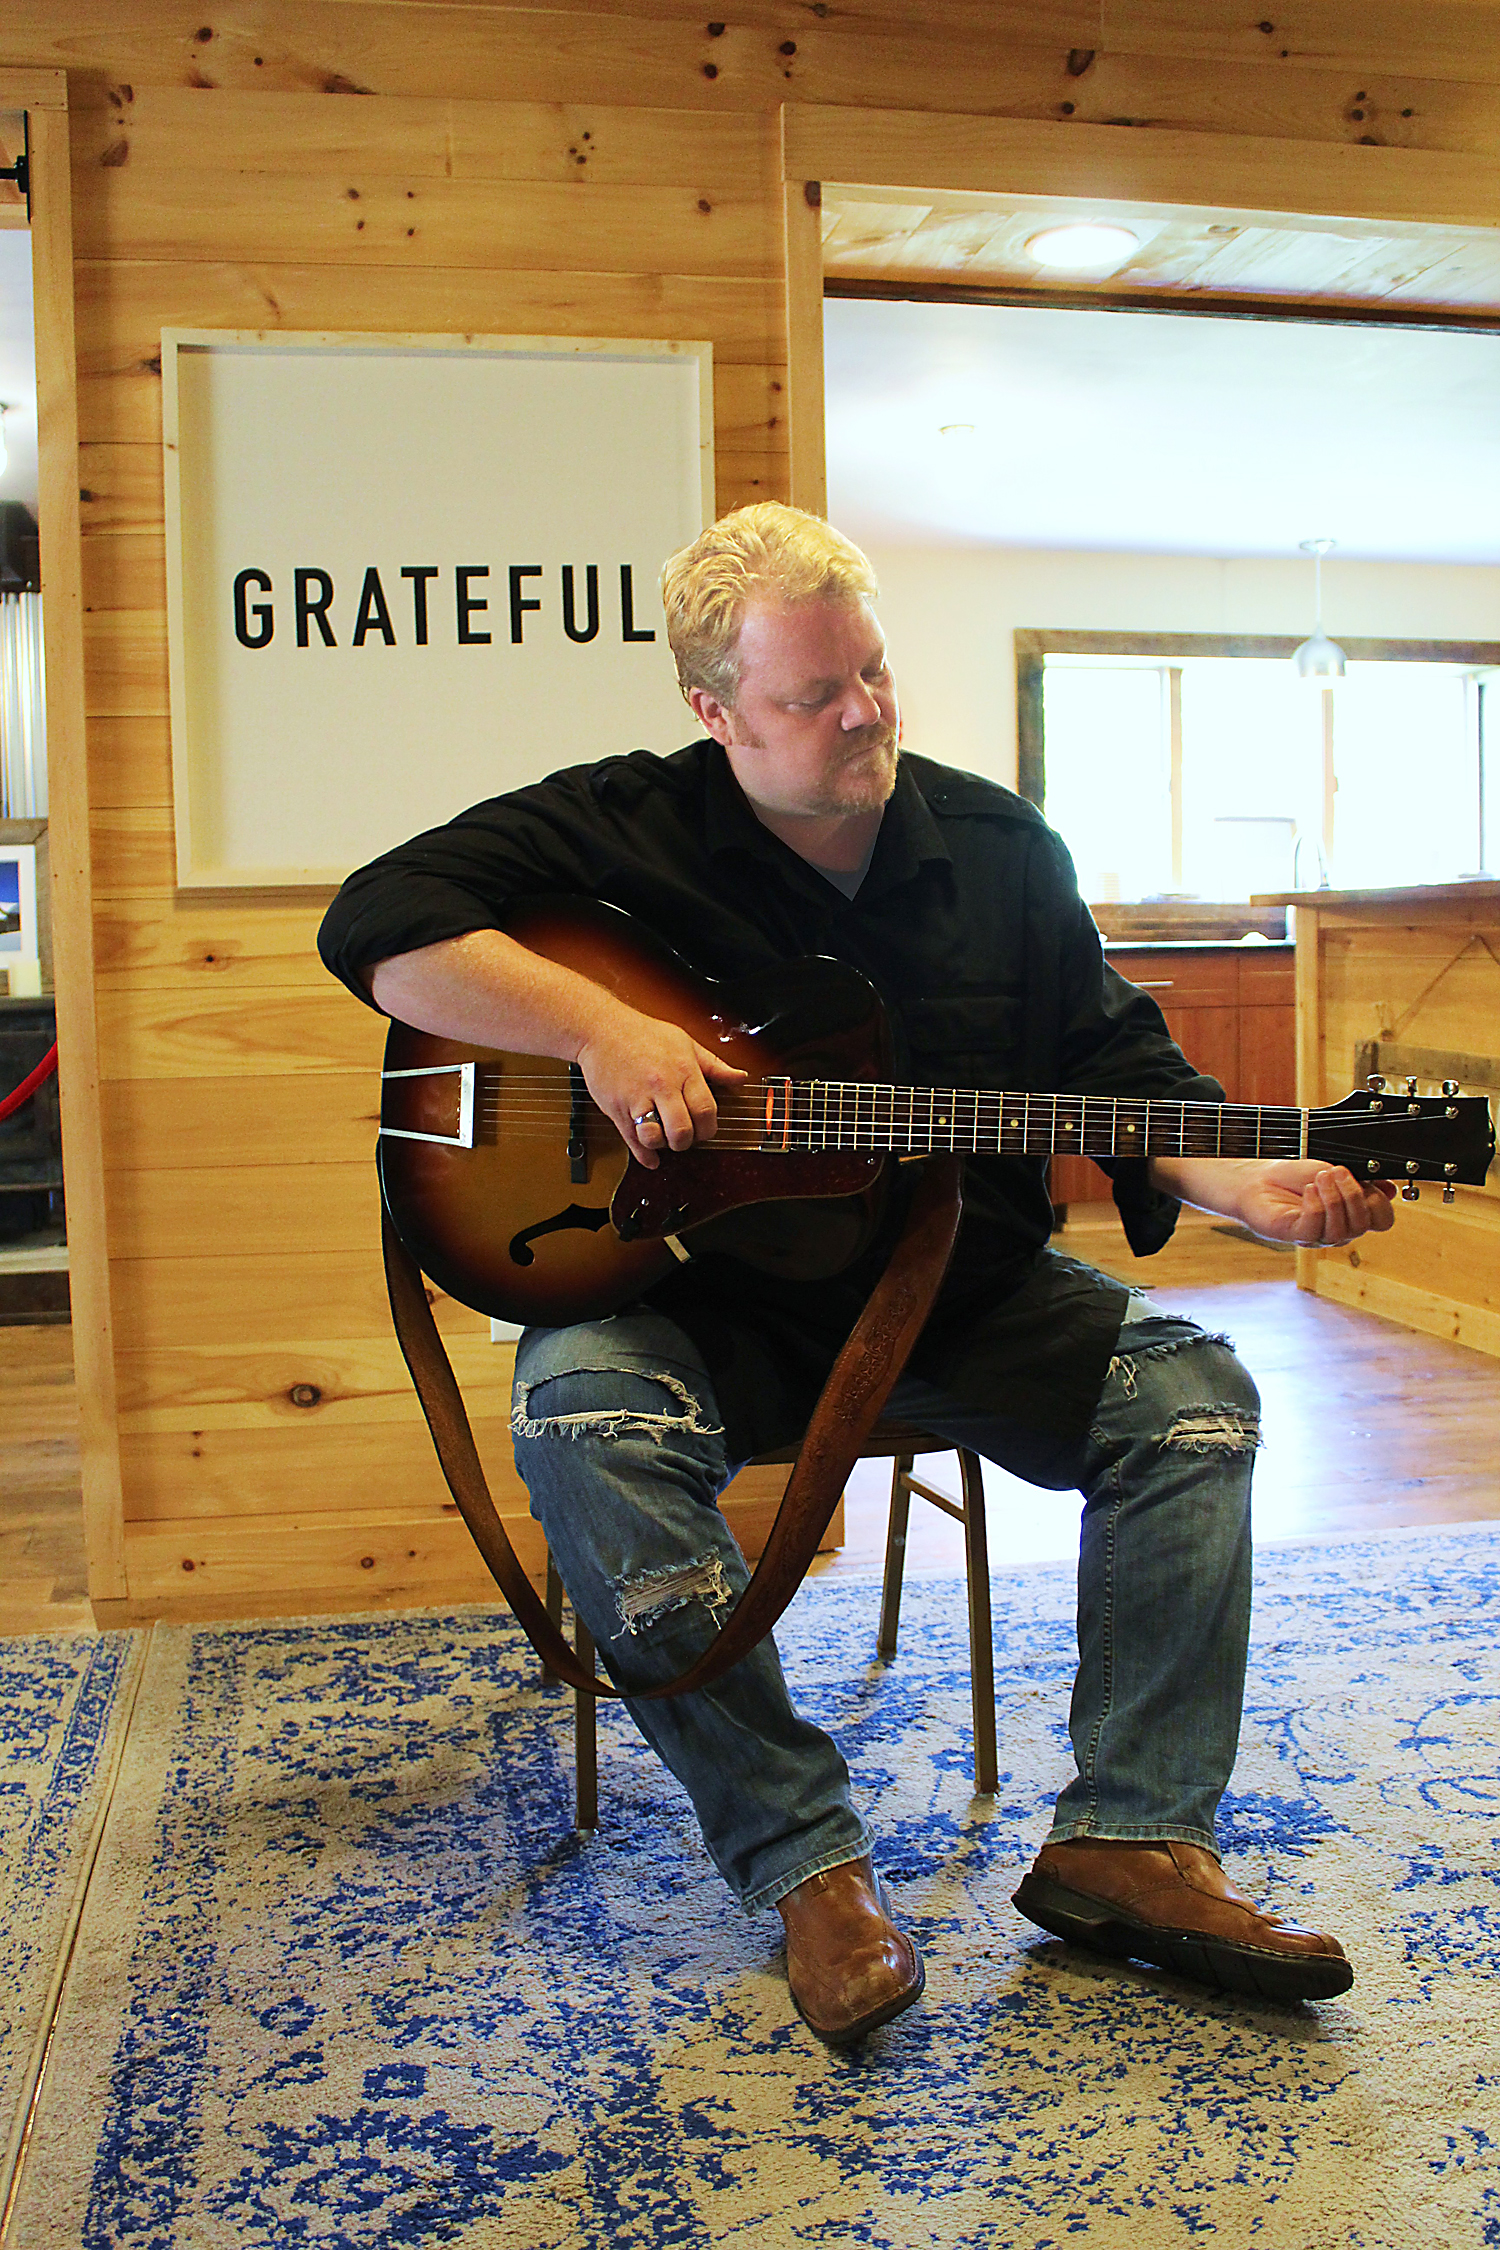 Chris Wilson strumming his guitar in front of the print that provides a daily focal reminder of his gratitude. Photo by Julia Mungenast